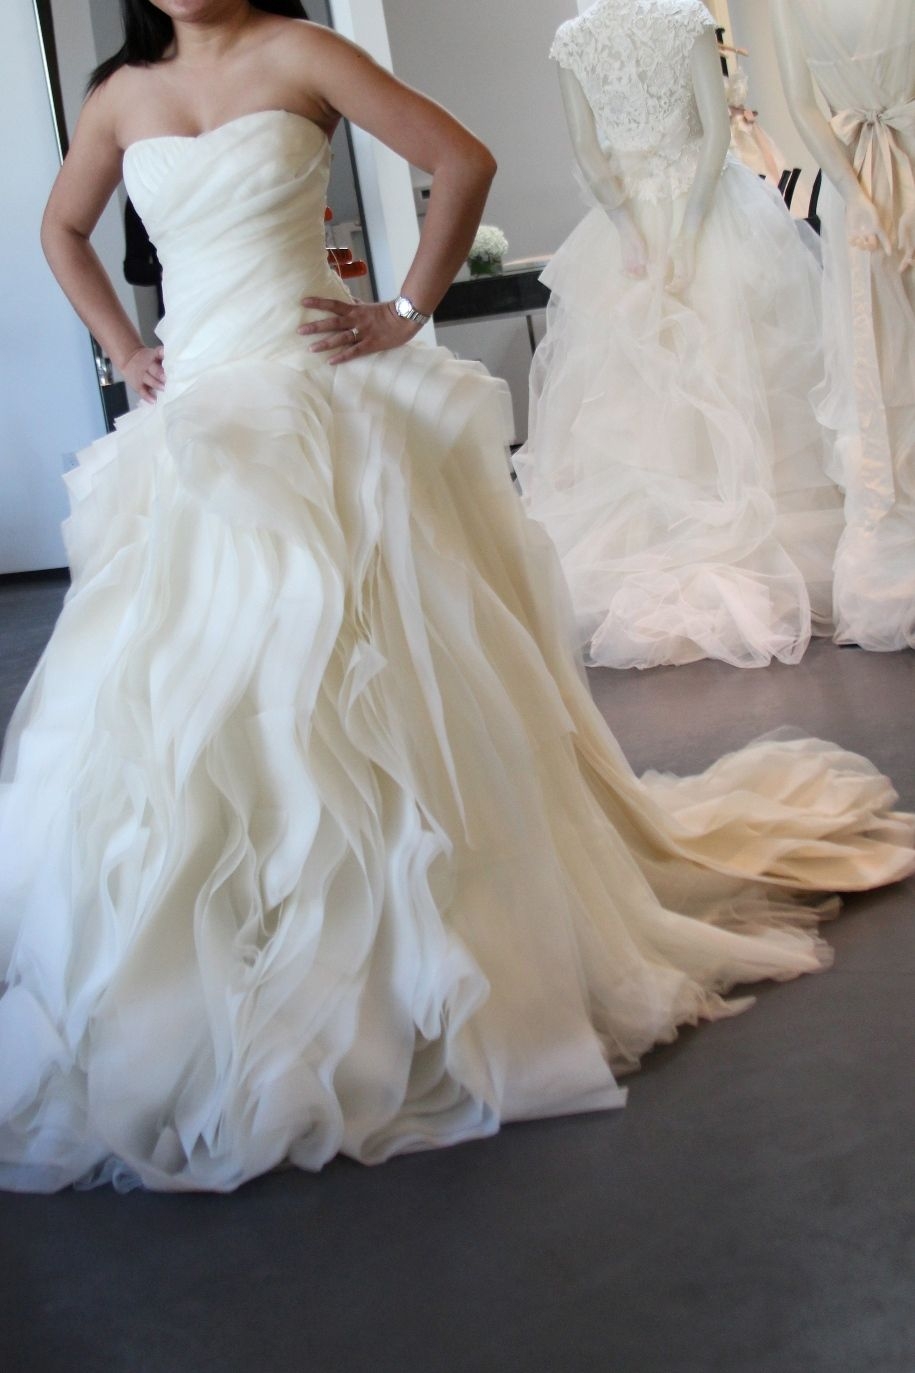 Vera wang diana dress my dream wedding gown i would wear for Price of vera wang wedding dress